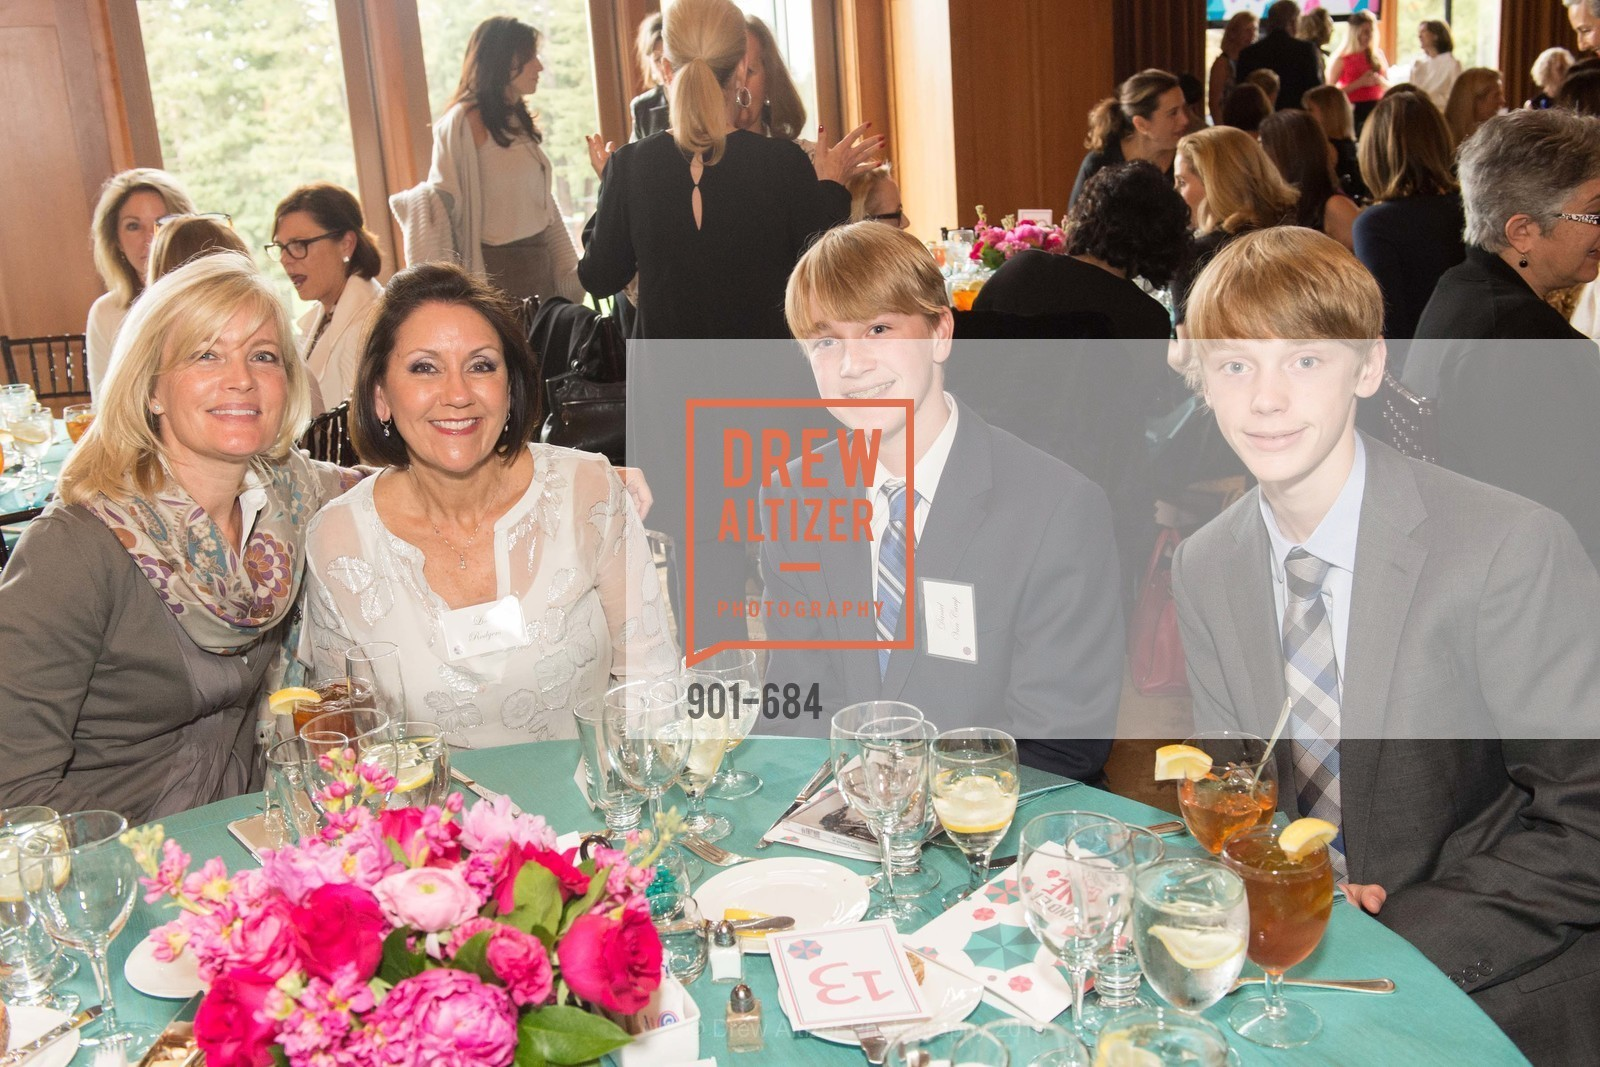 Laura van Camp, Daniel van Camp, Cameron van Camp, Under One Umbrella, Sharon Heights Golf and Country Club, January 13th, 2016,Drew Altizer, Drew Altizer Photography, full-service agency, private events, San Francisco photographer, photographer california